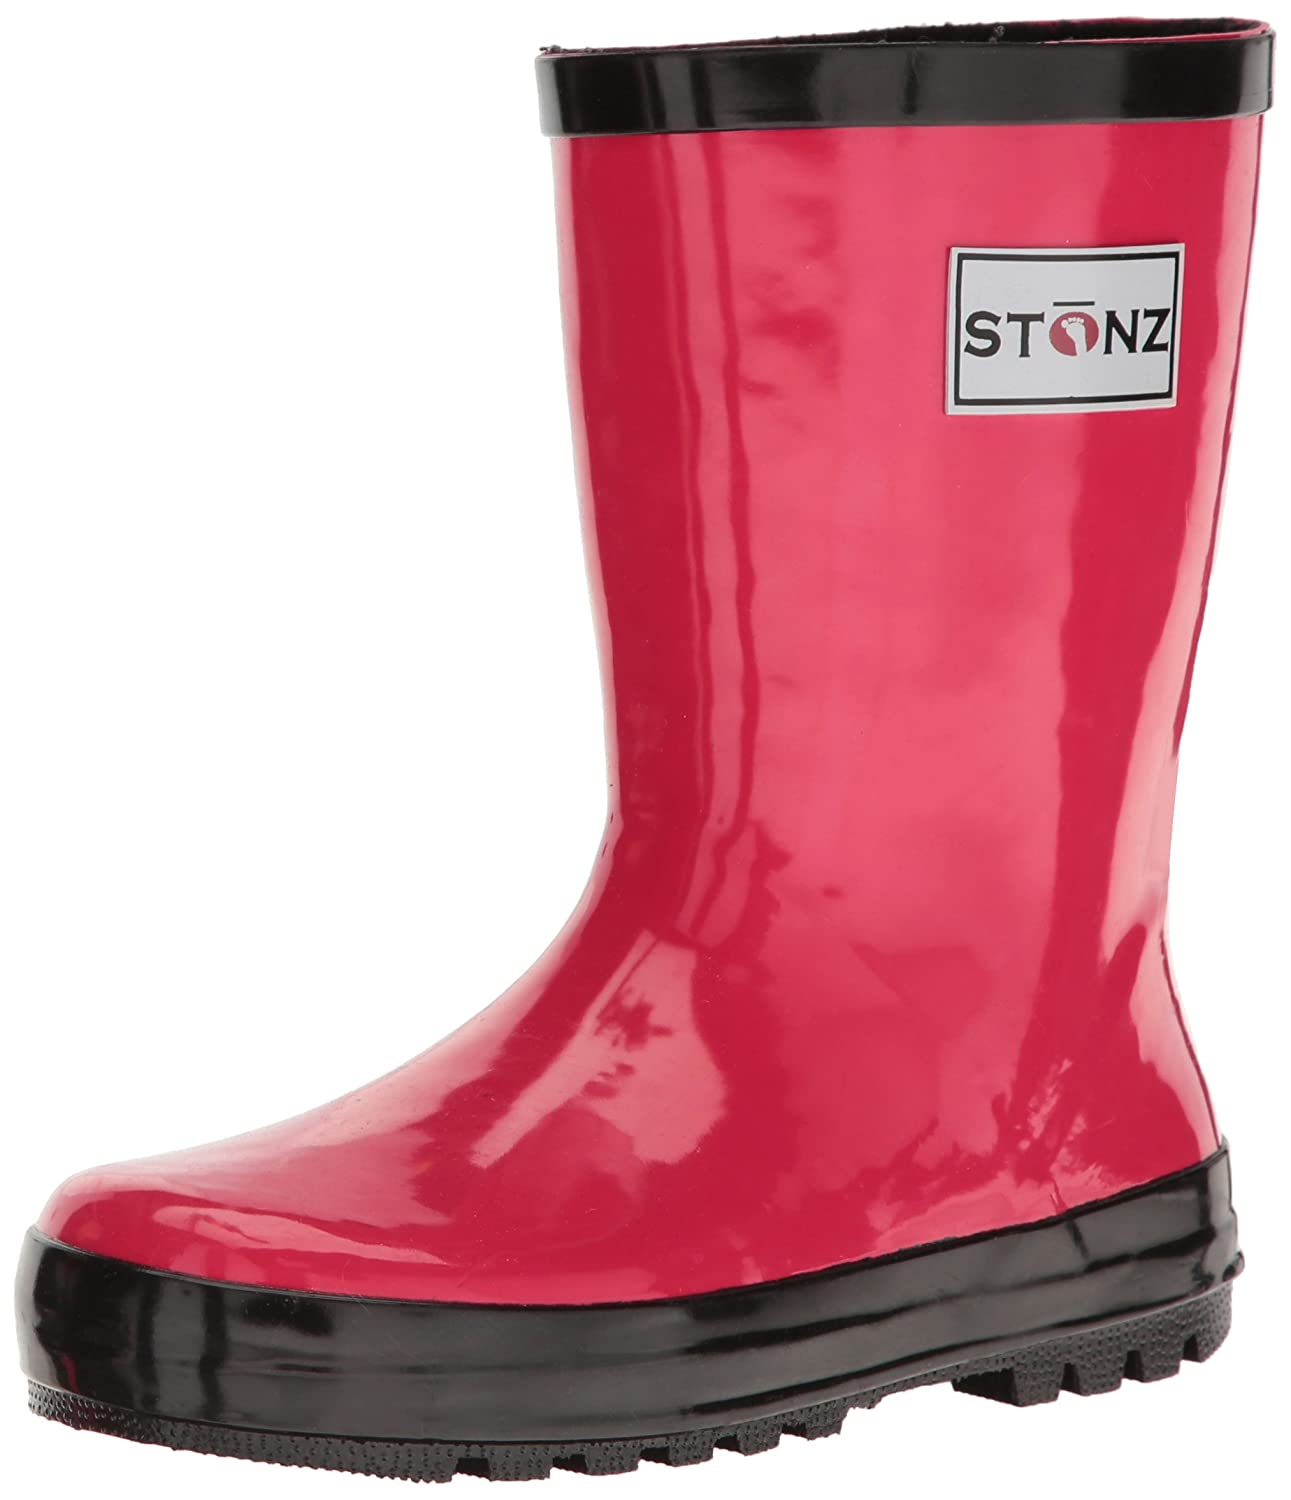 Stonz All-Natural Rubber Kids Rain Boots Waterproof - Boys & Girls Toddler Little Kid Big Kid STONZ-RAINBOOTS